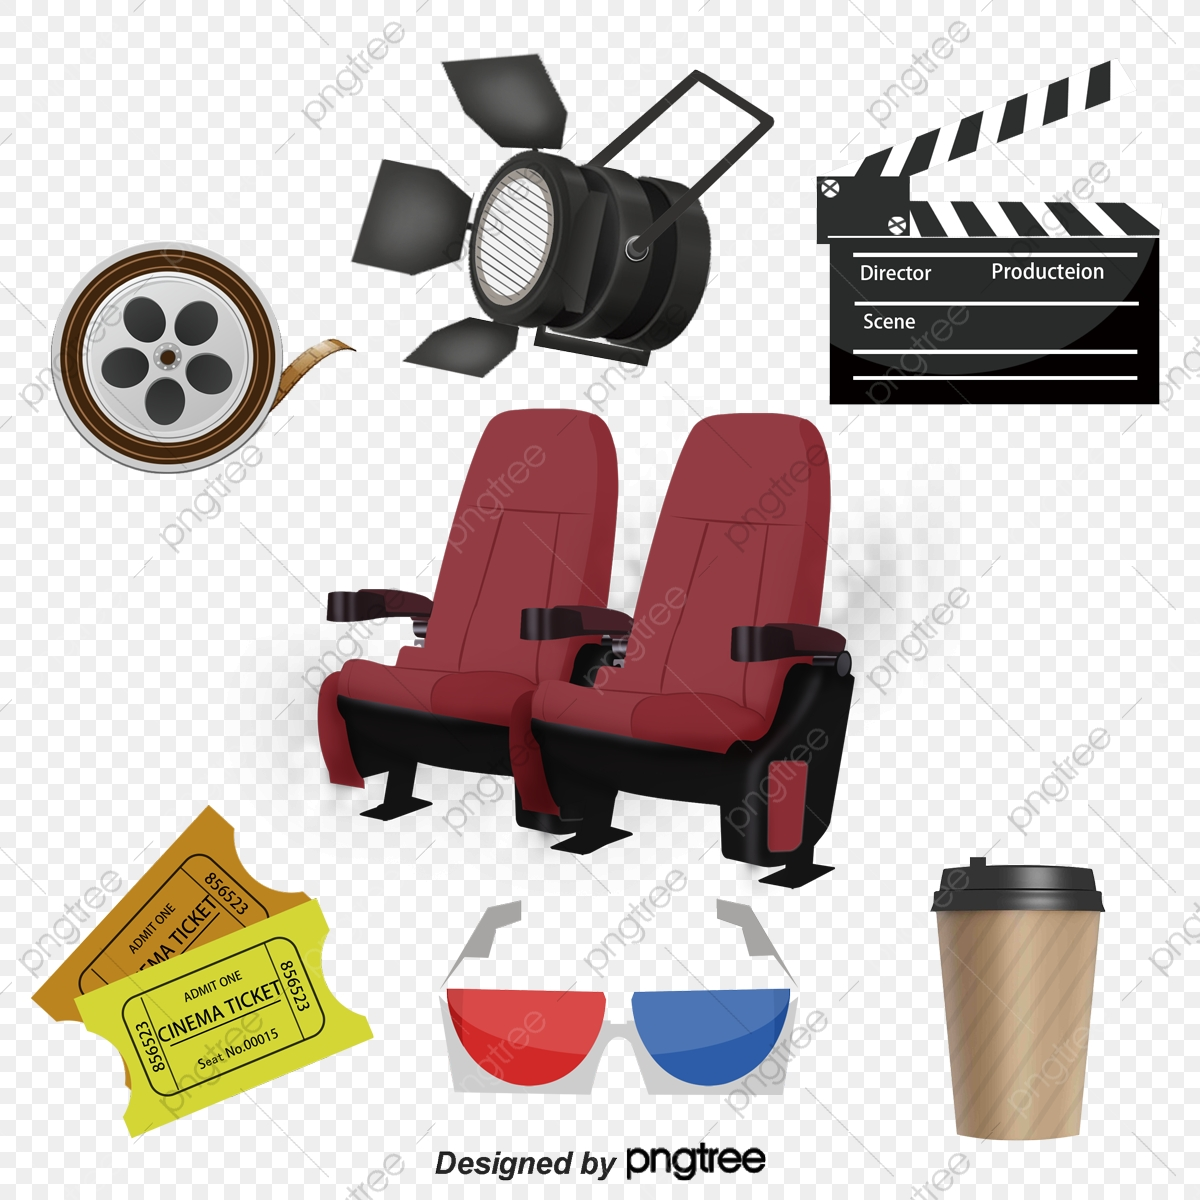 Movies And Seat, Clapperboard, Movie Ticket, 3d Glasses PNG